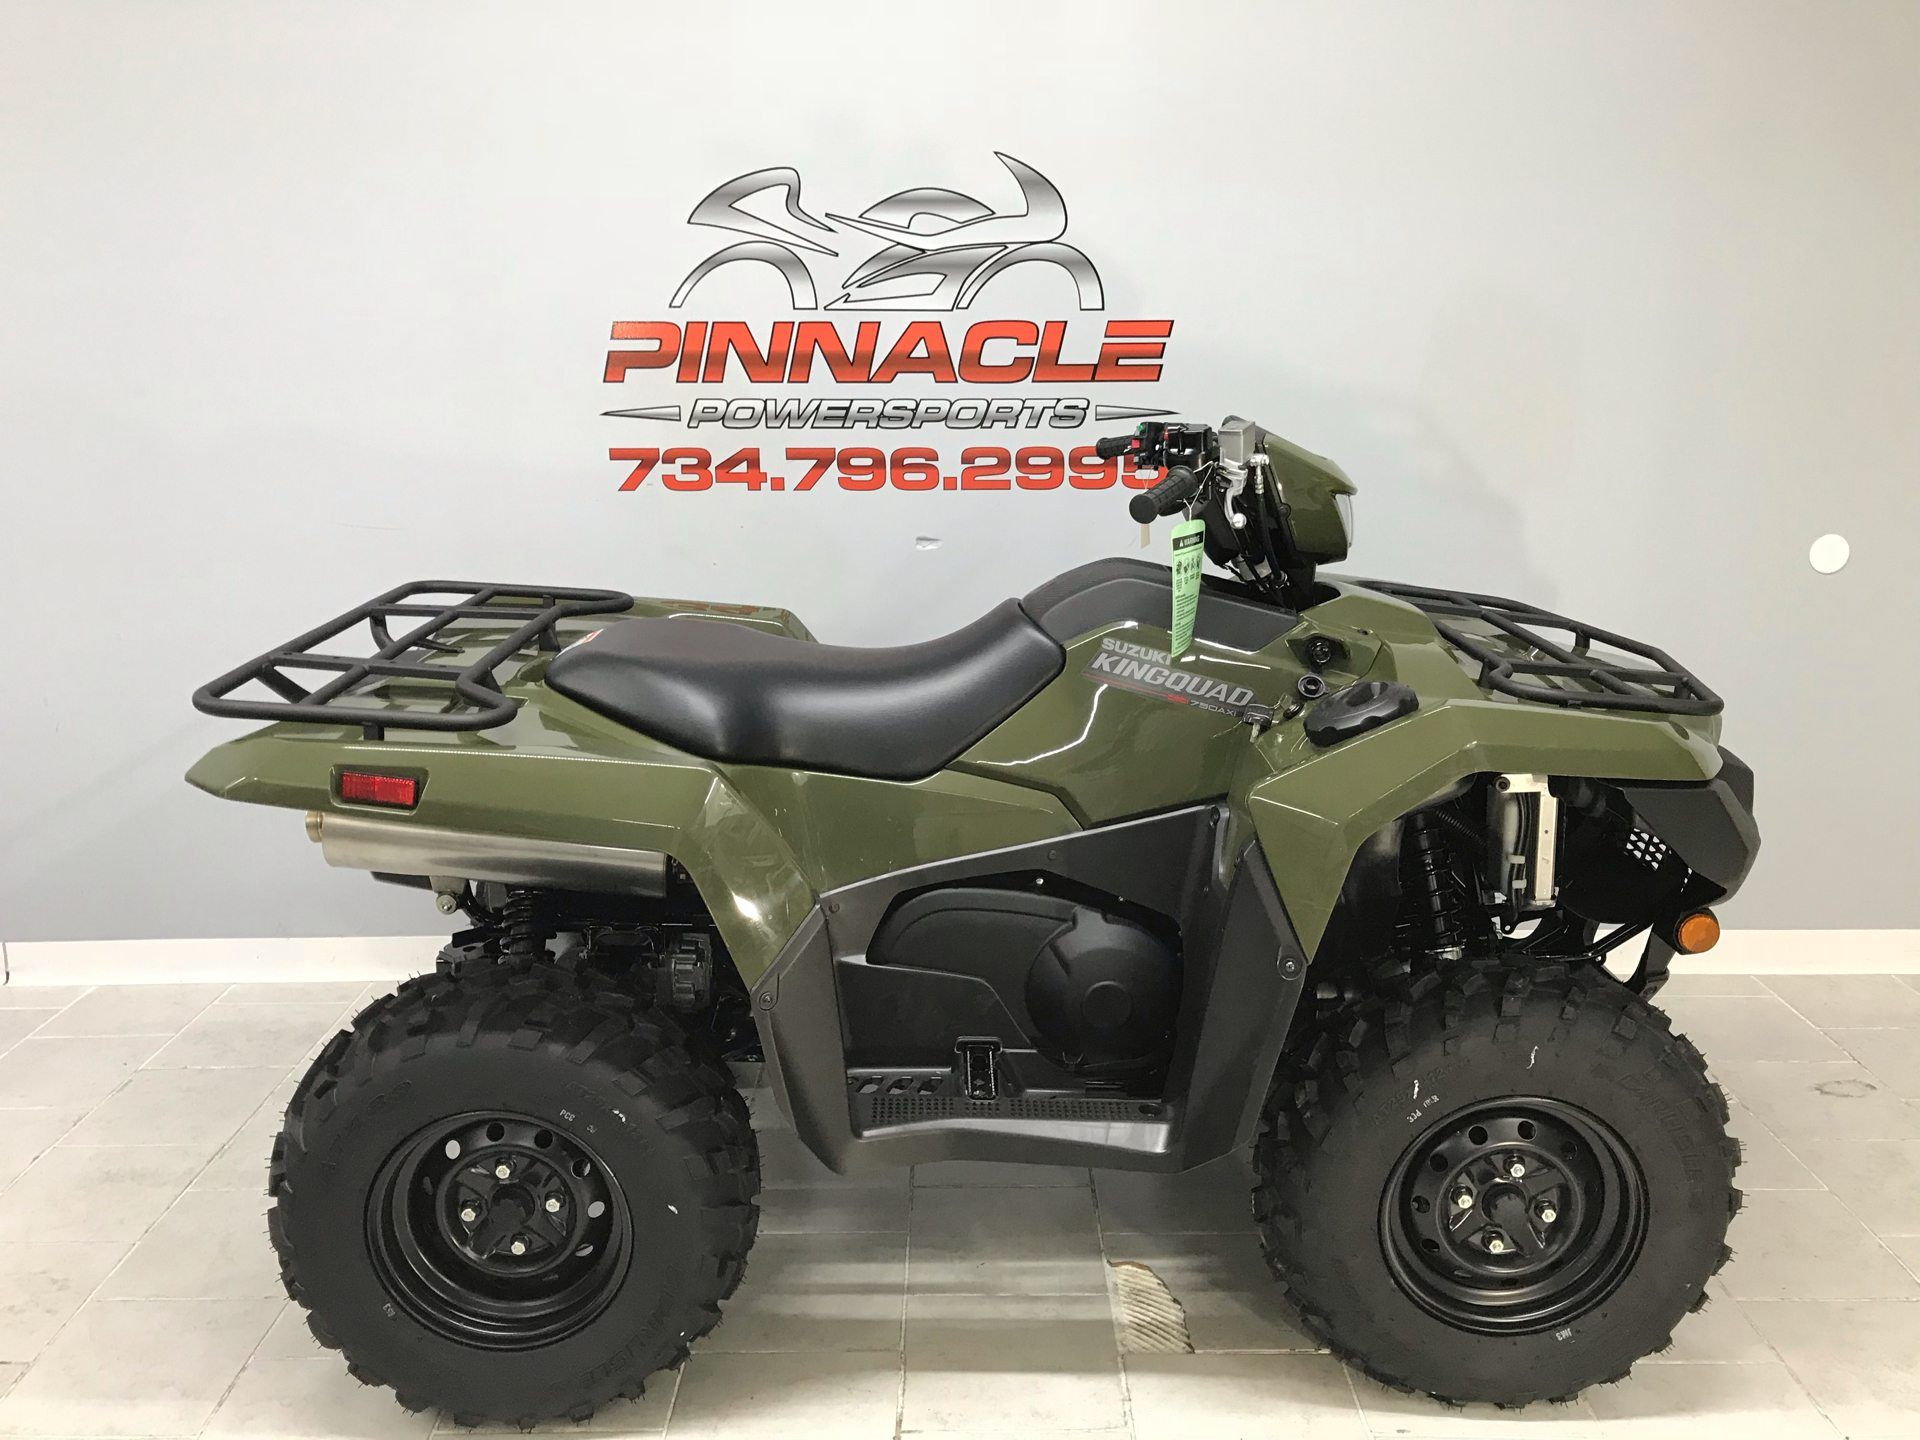 2020 Suzuki KingQuad 500AXi in Belleville, Michigan - Photo 1